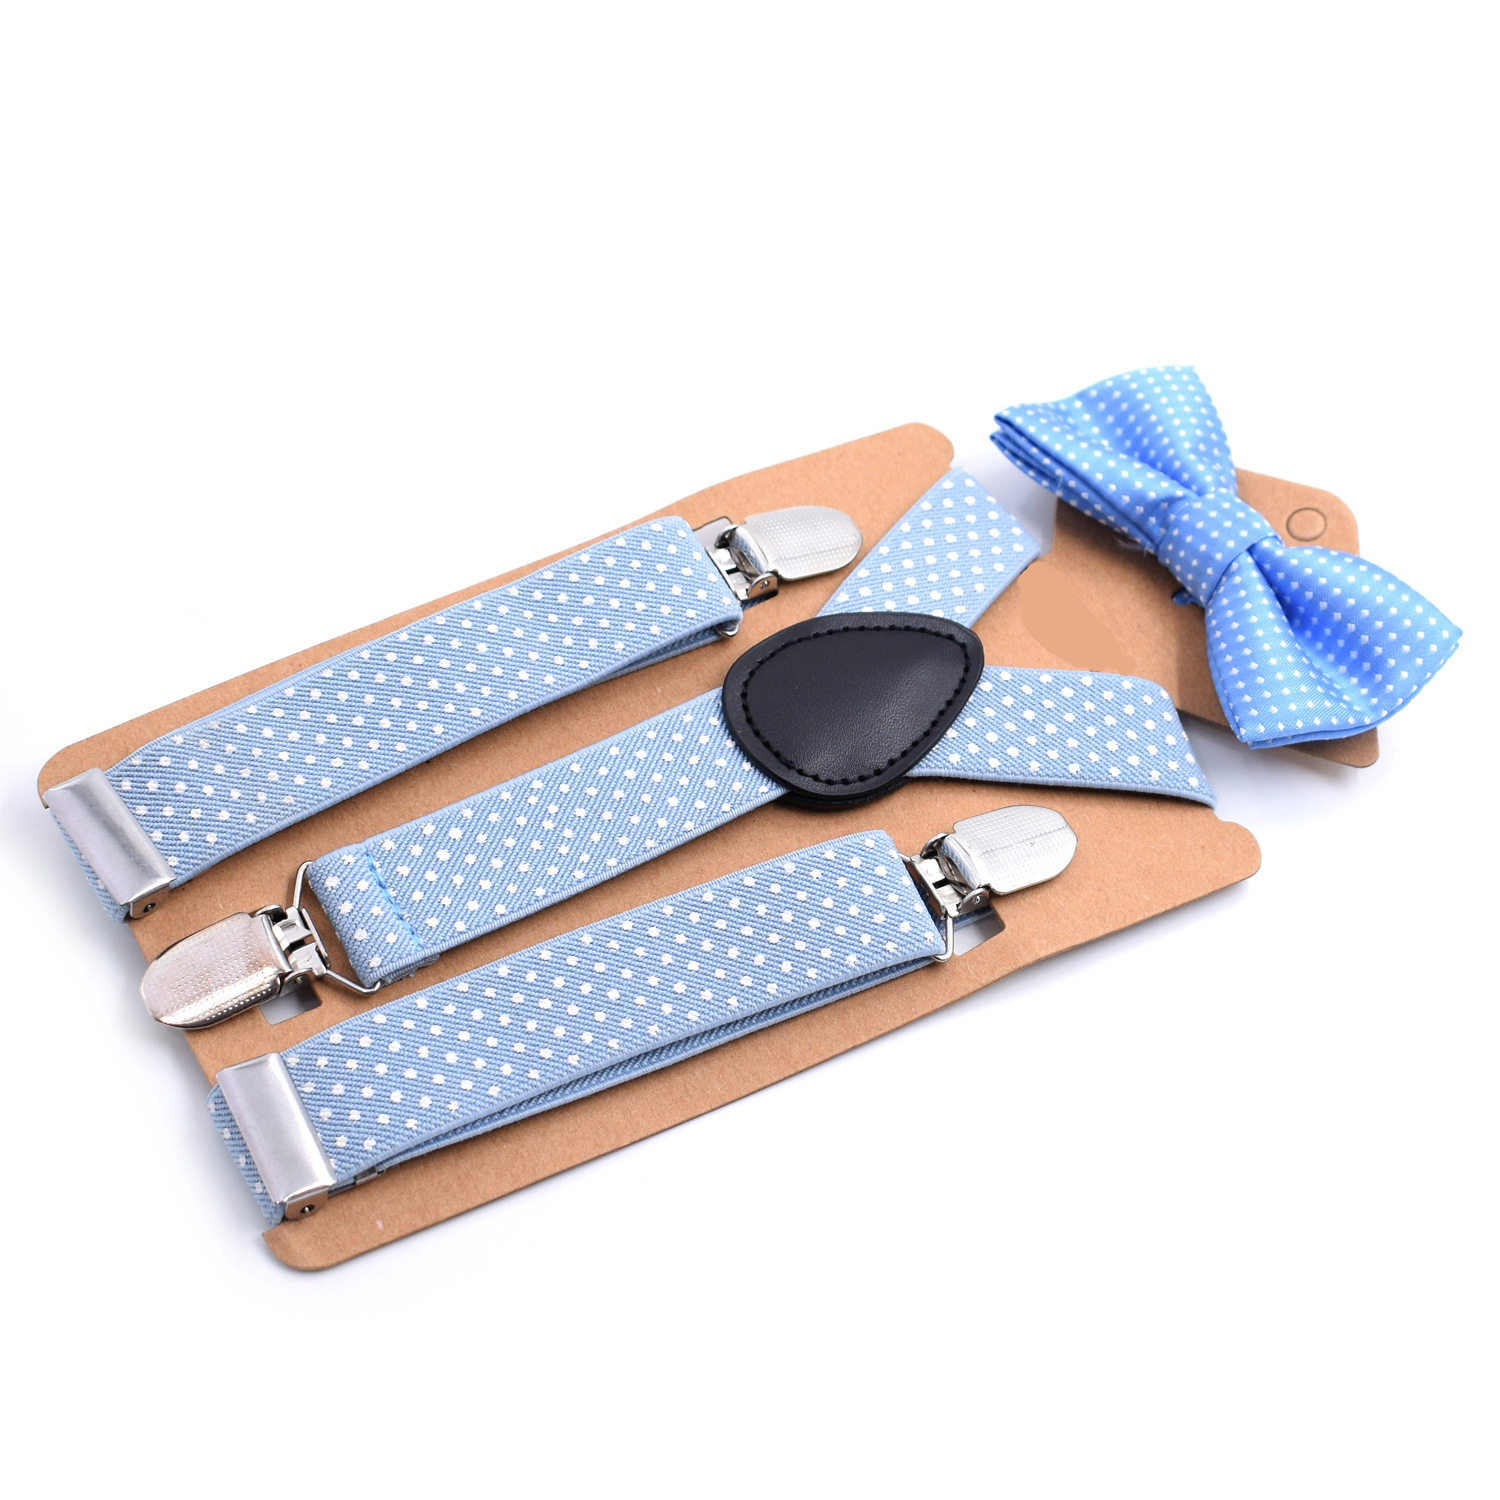 2019 New Bow Tie Suit Children's Strap Clip Black Print 3 Clip Boy And Girl Suspender Belt Strap Adjustable Fashion Novelty